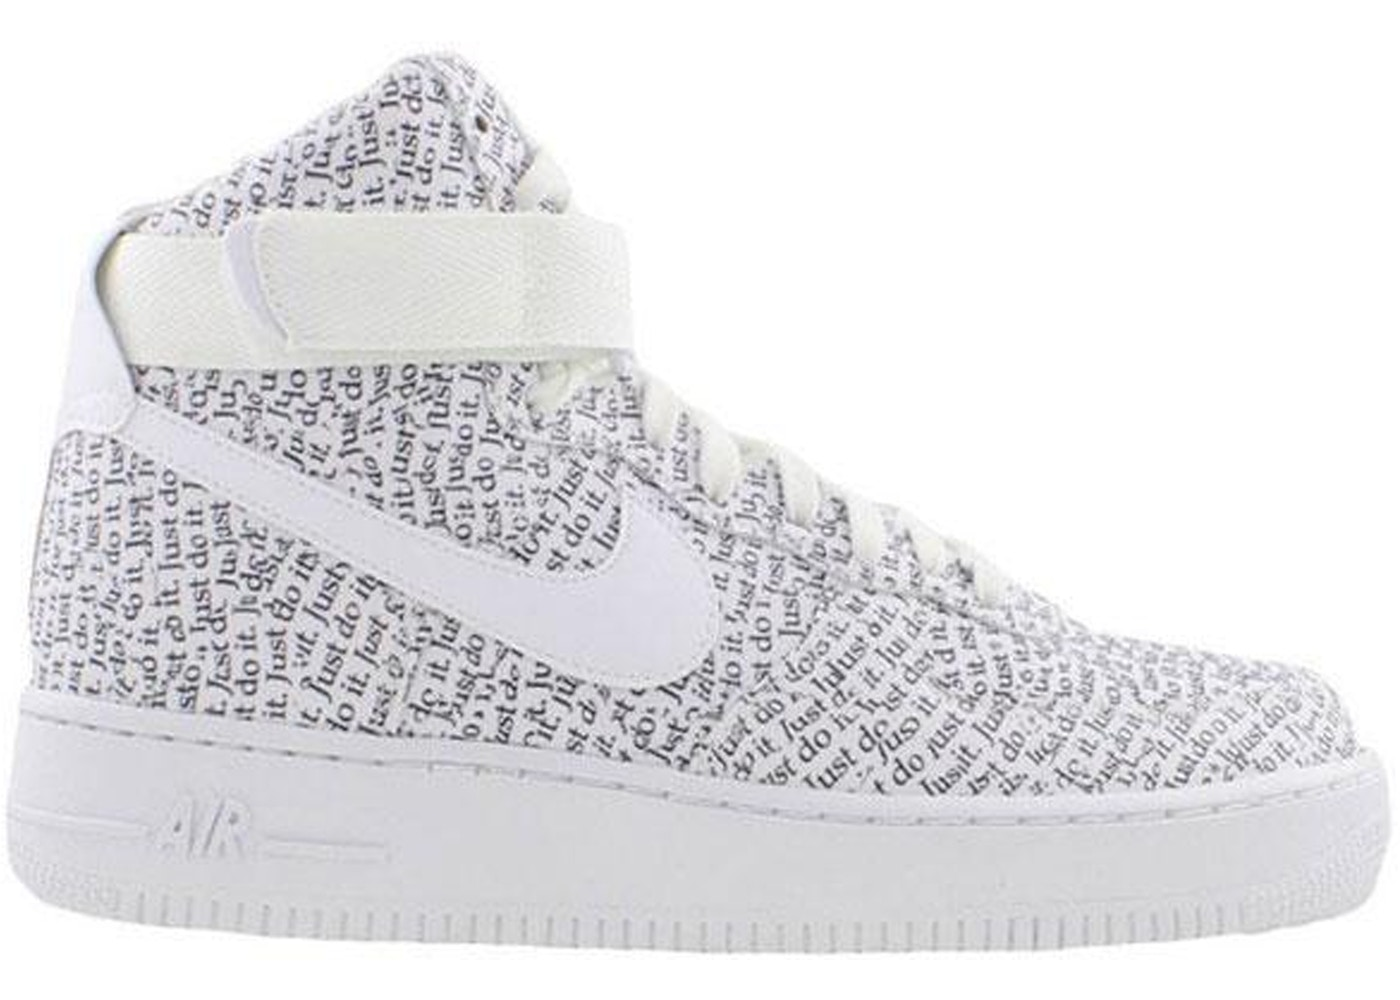 Air Force 1 High Just Do It Pack White Black